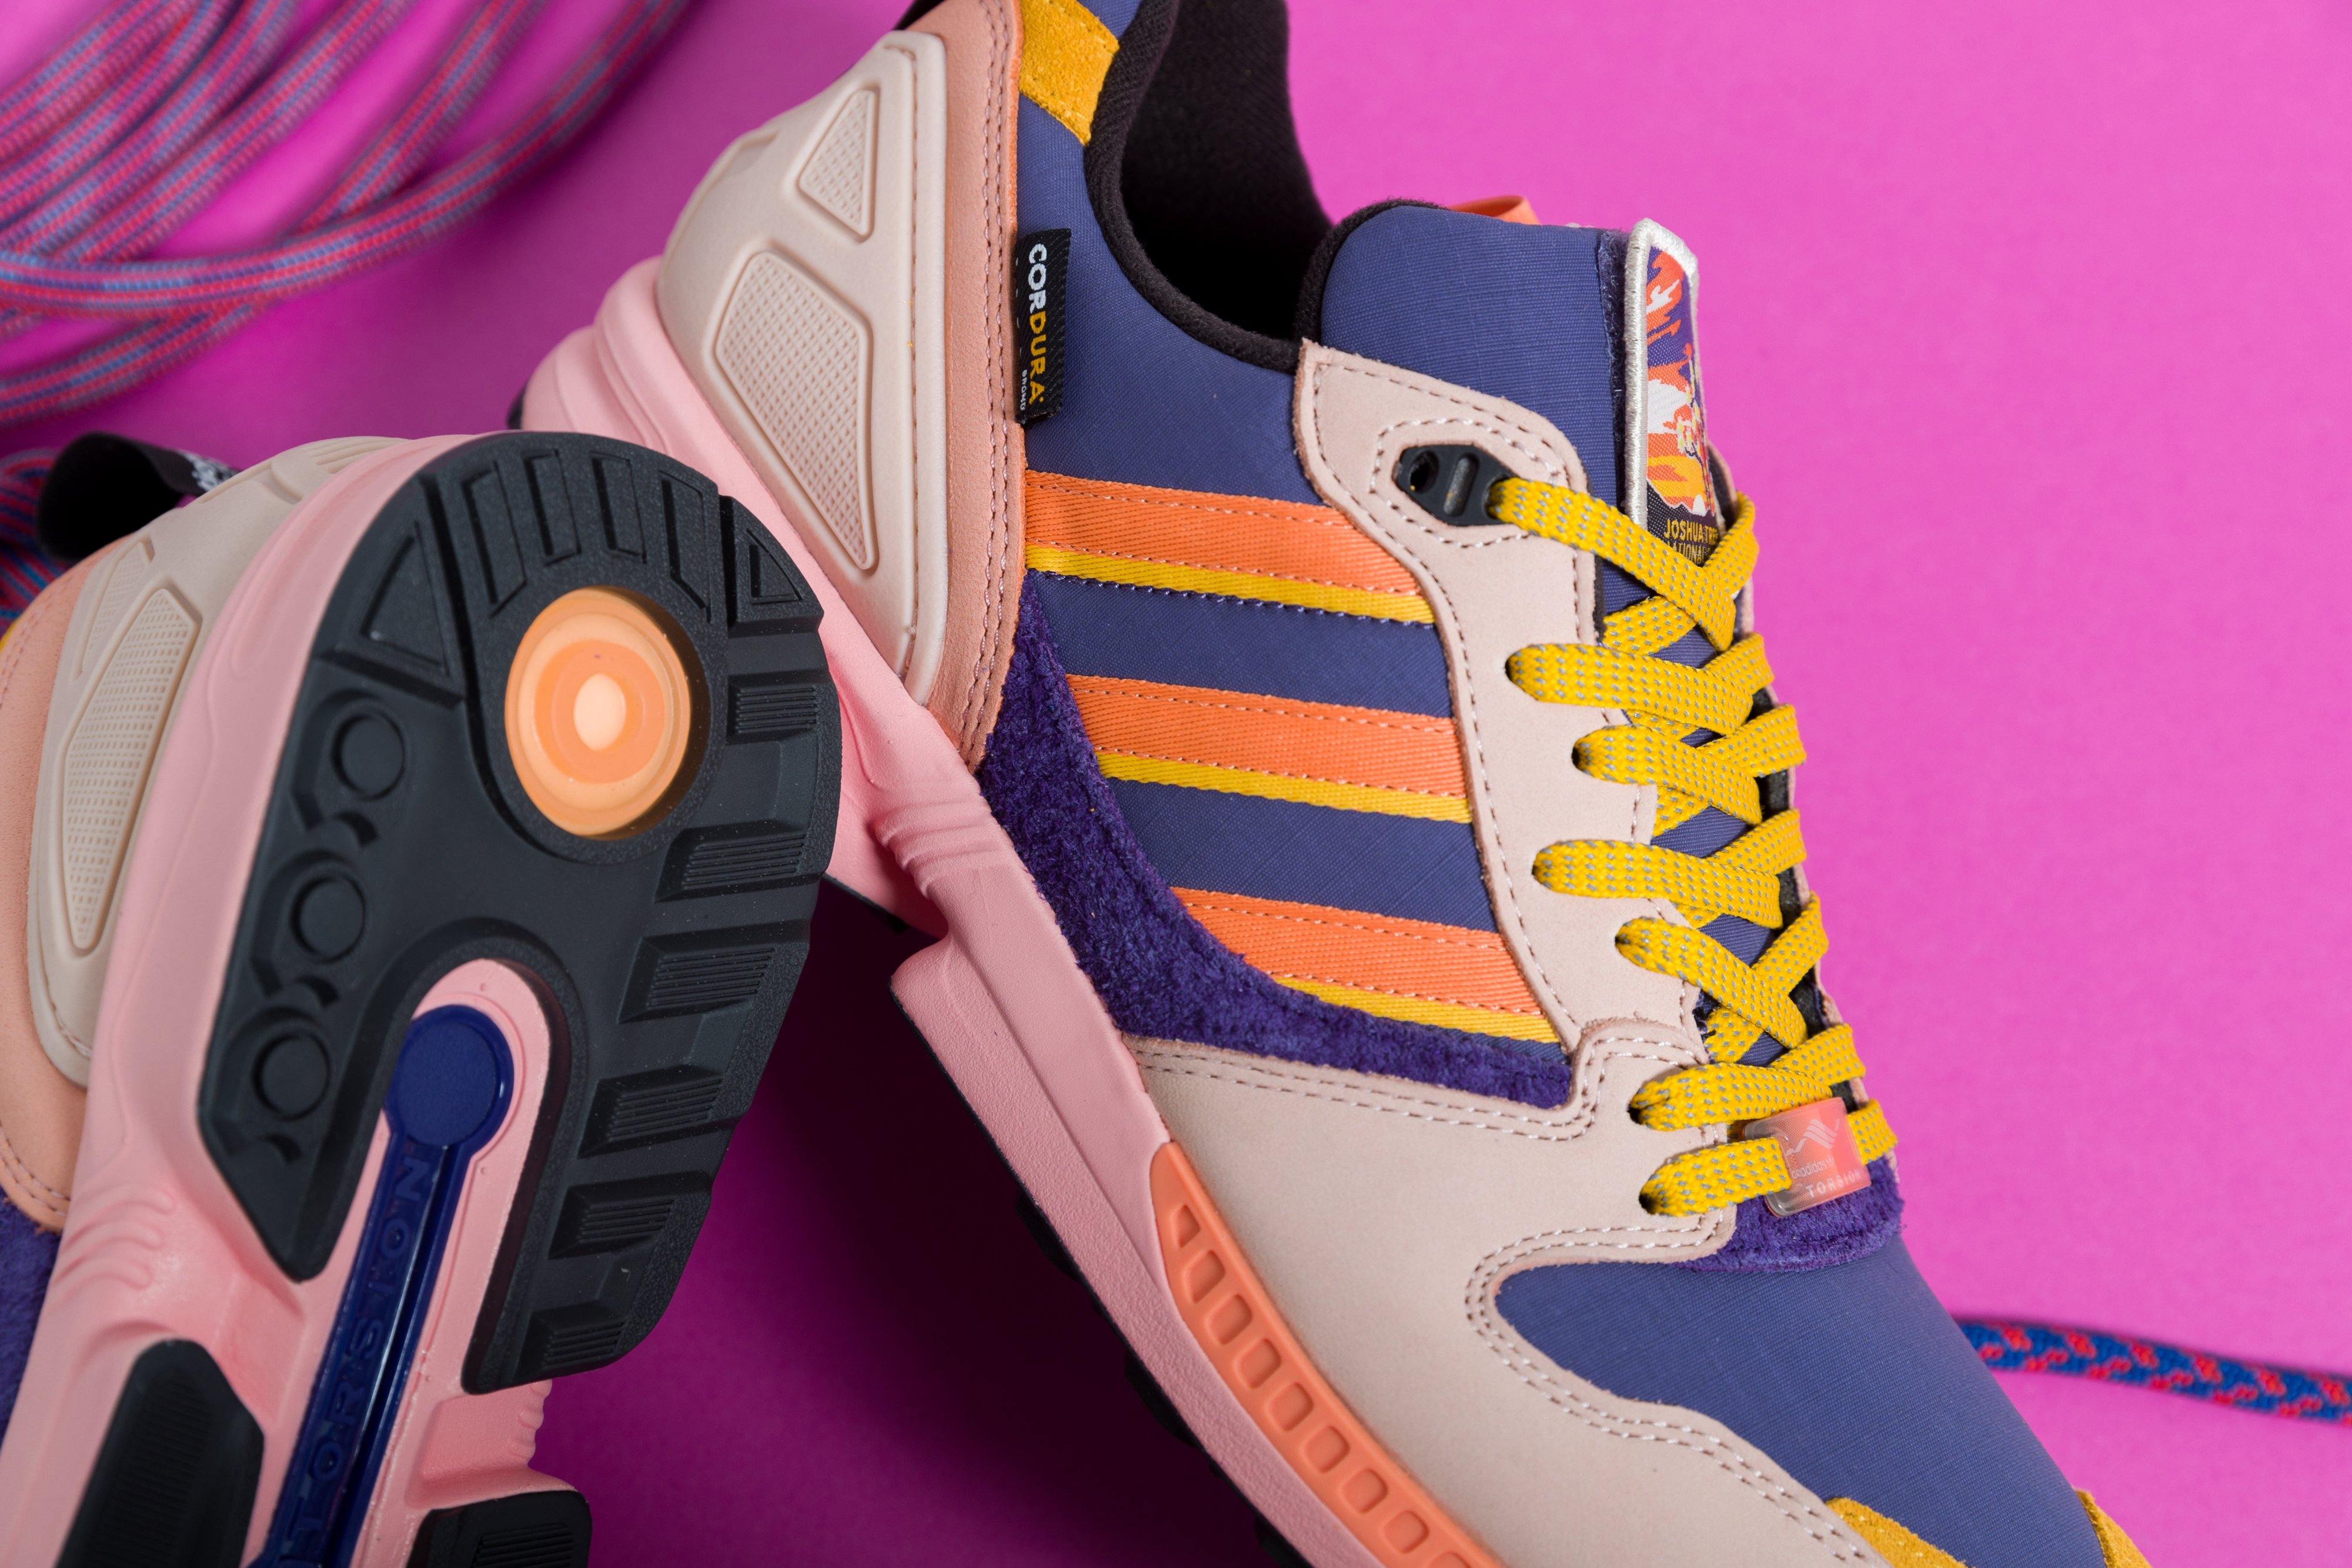 N Is For National Park Foundation (Joshua Tree): adidas Originals A-ZX ZX 5000